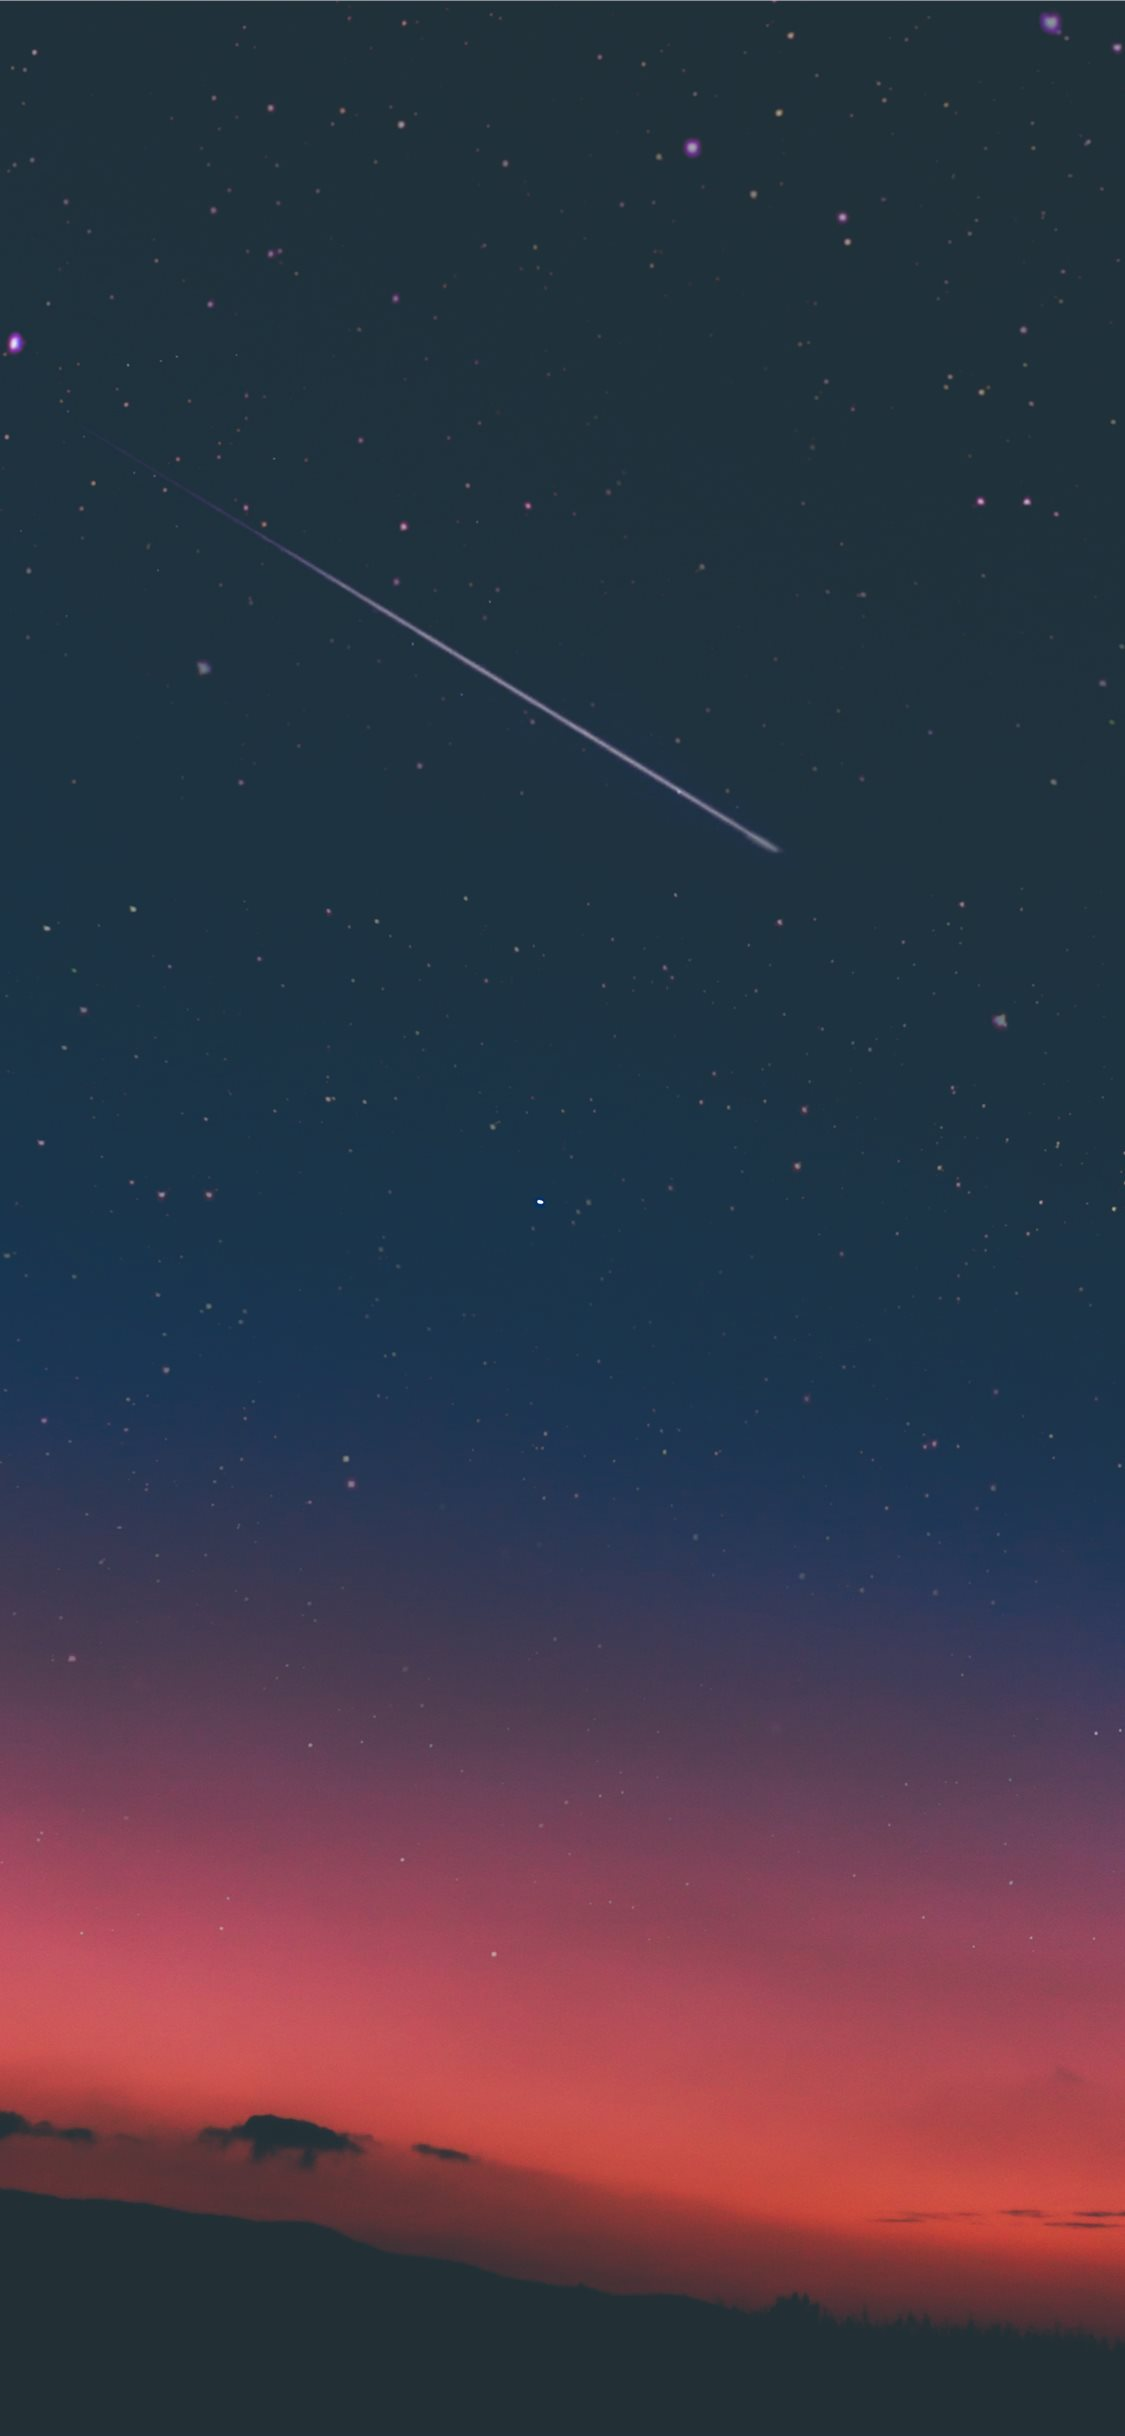 Shooting Star In Night Sky Iphone 11 Wallpapers Free Download